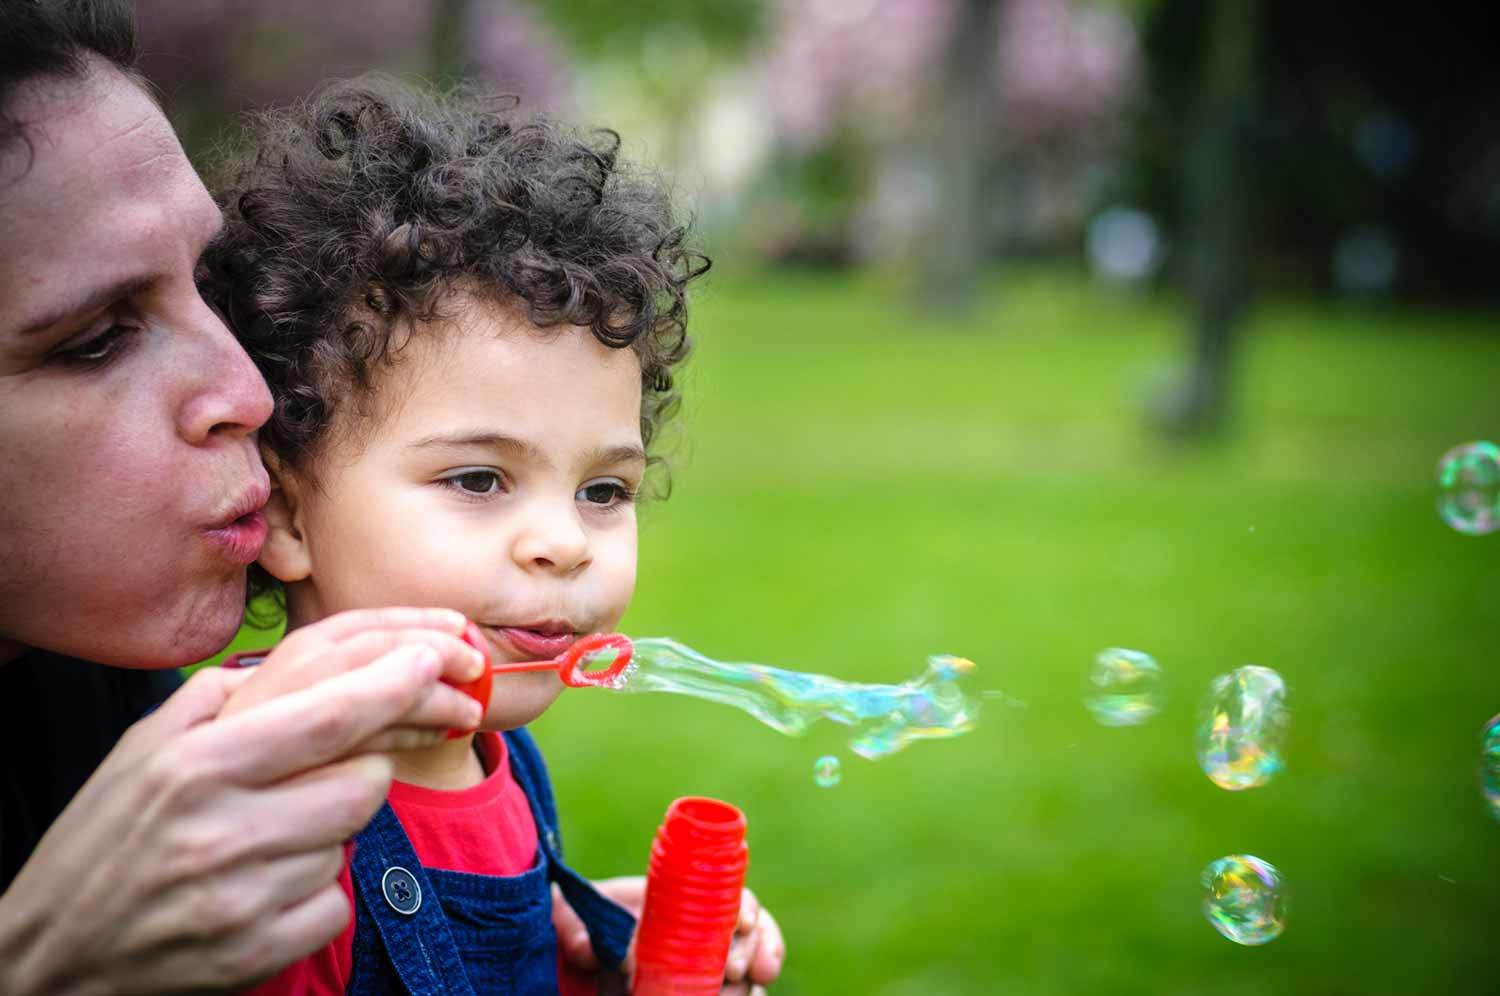 Mom and her young child blow bubbles, outside.